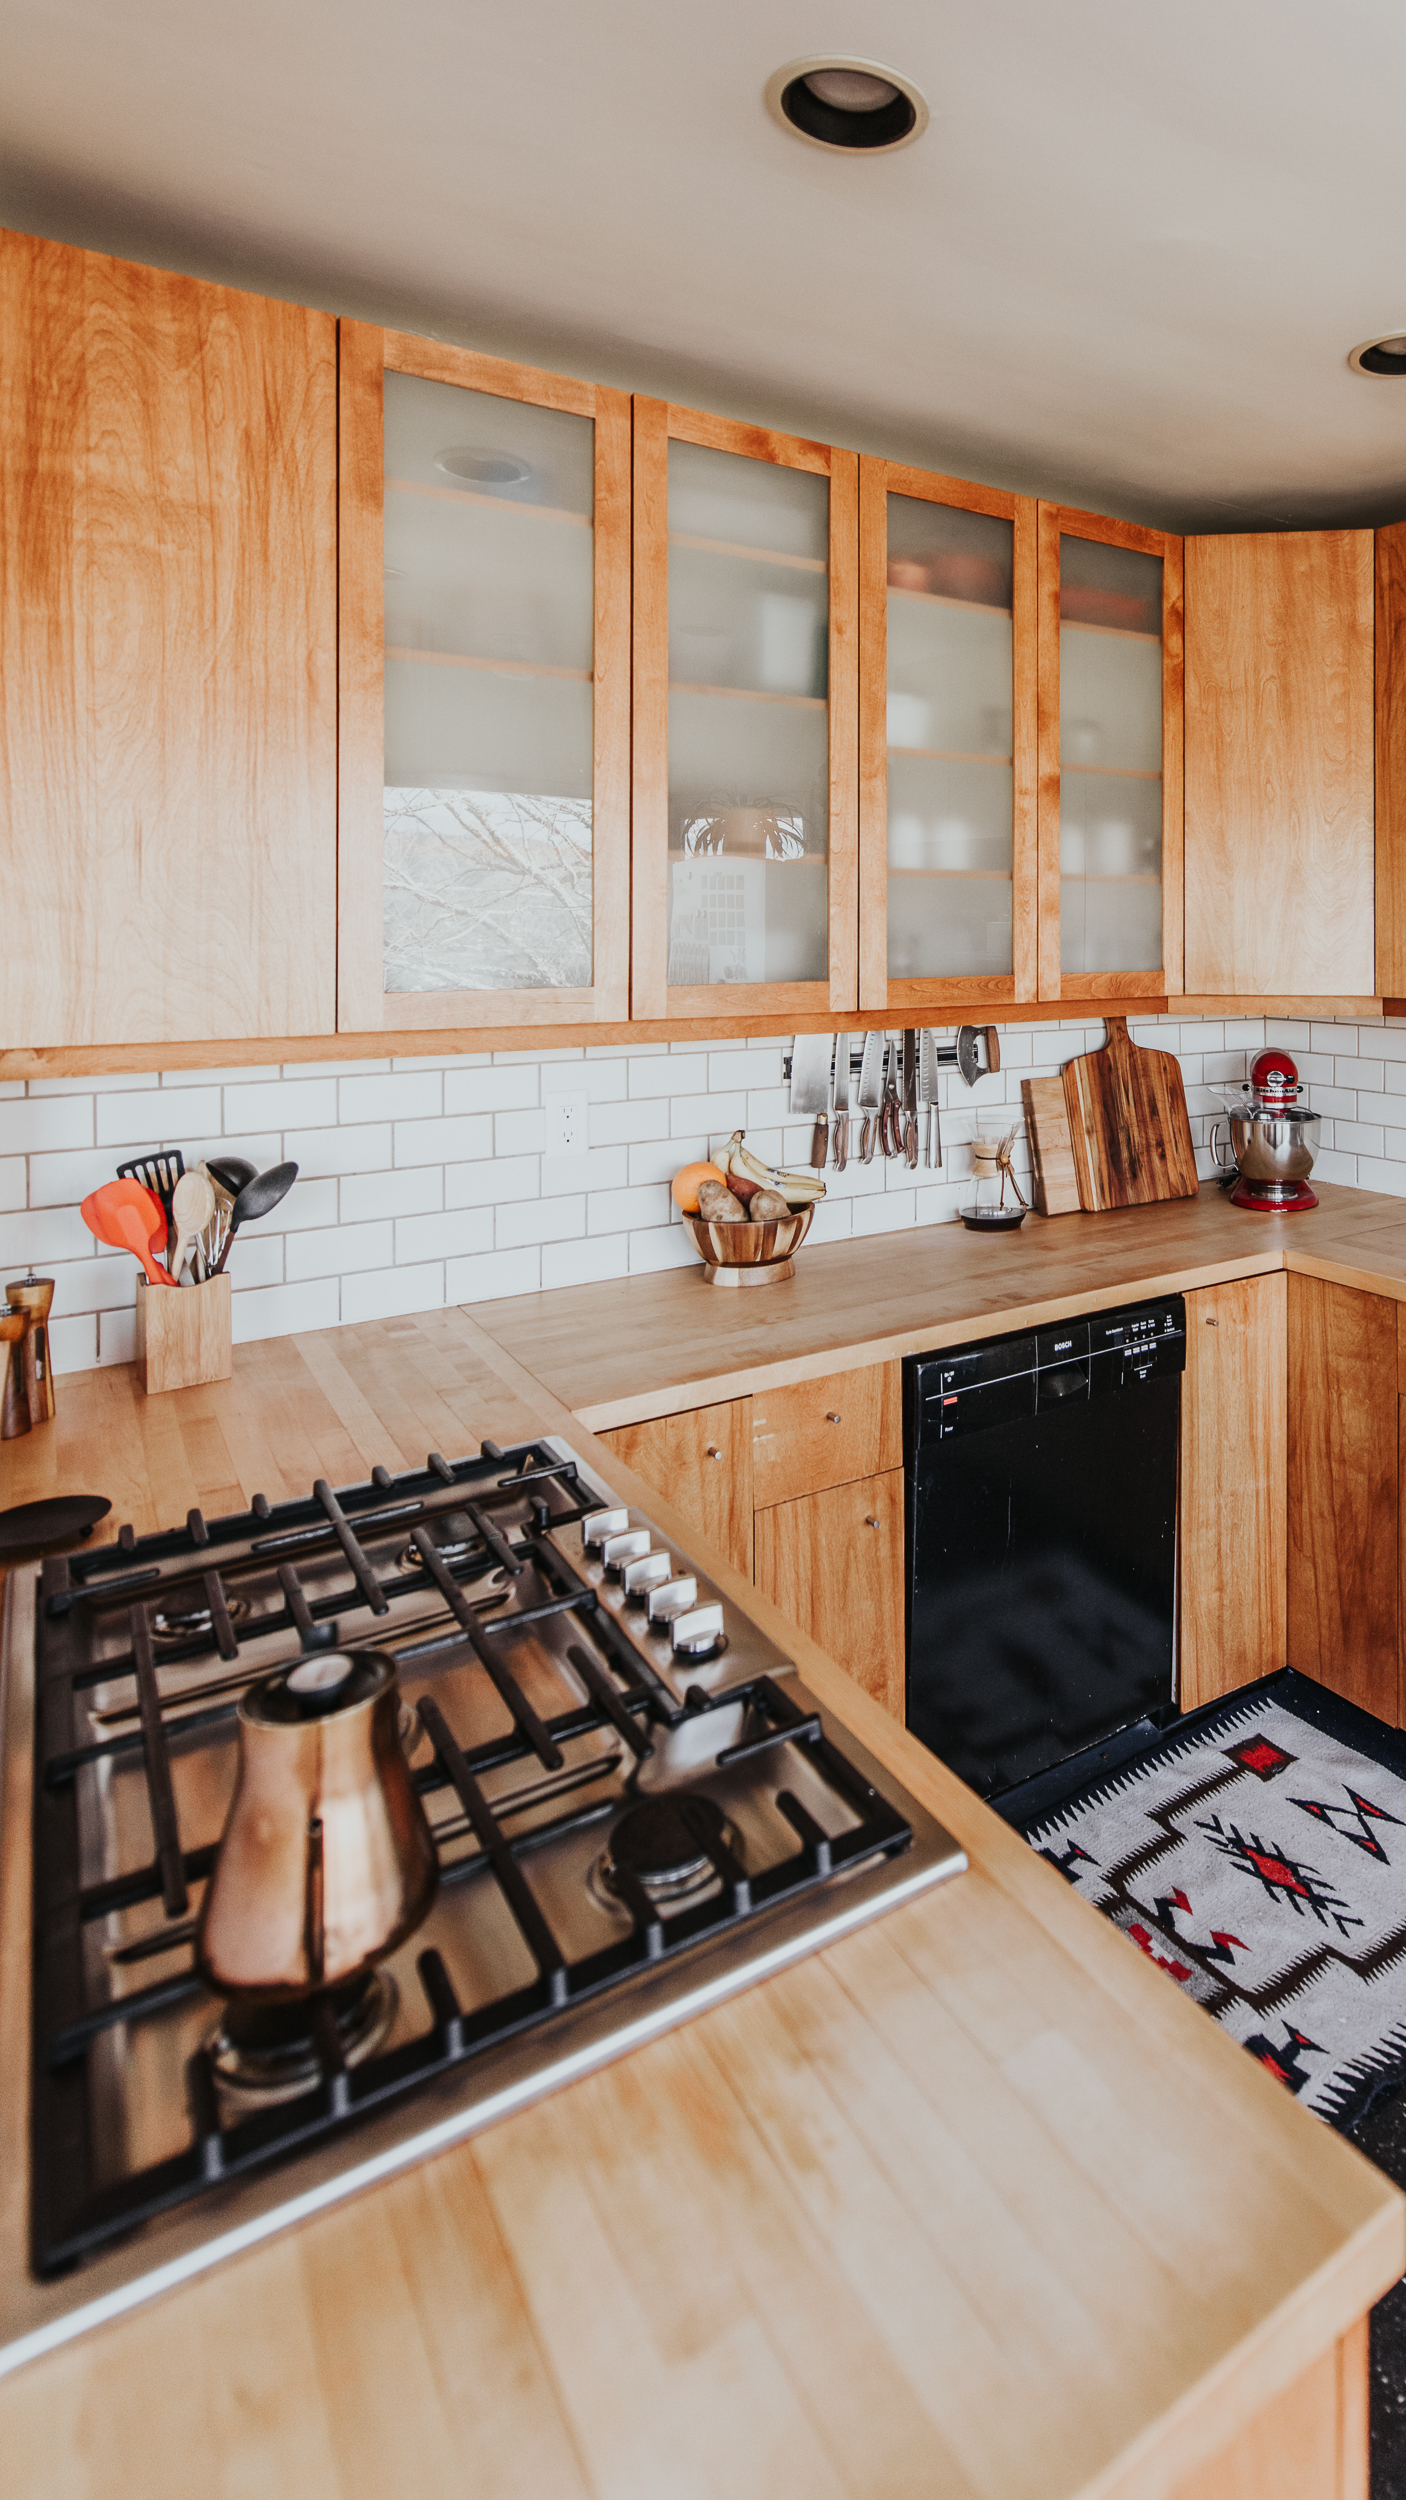 Kitchen_02.jpg